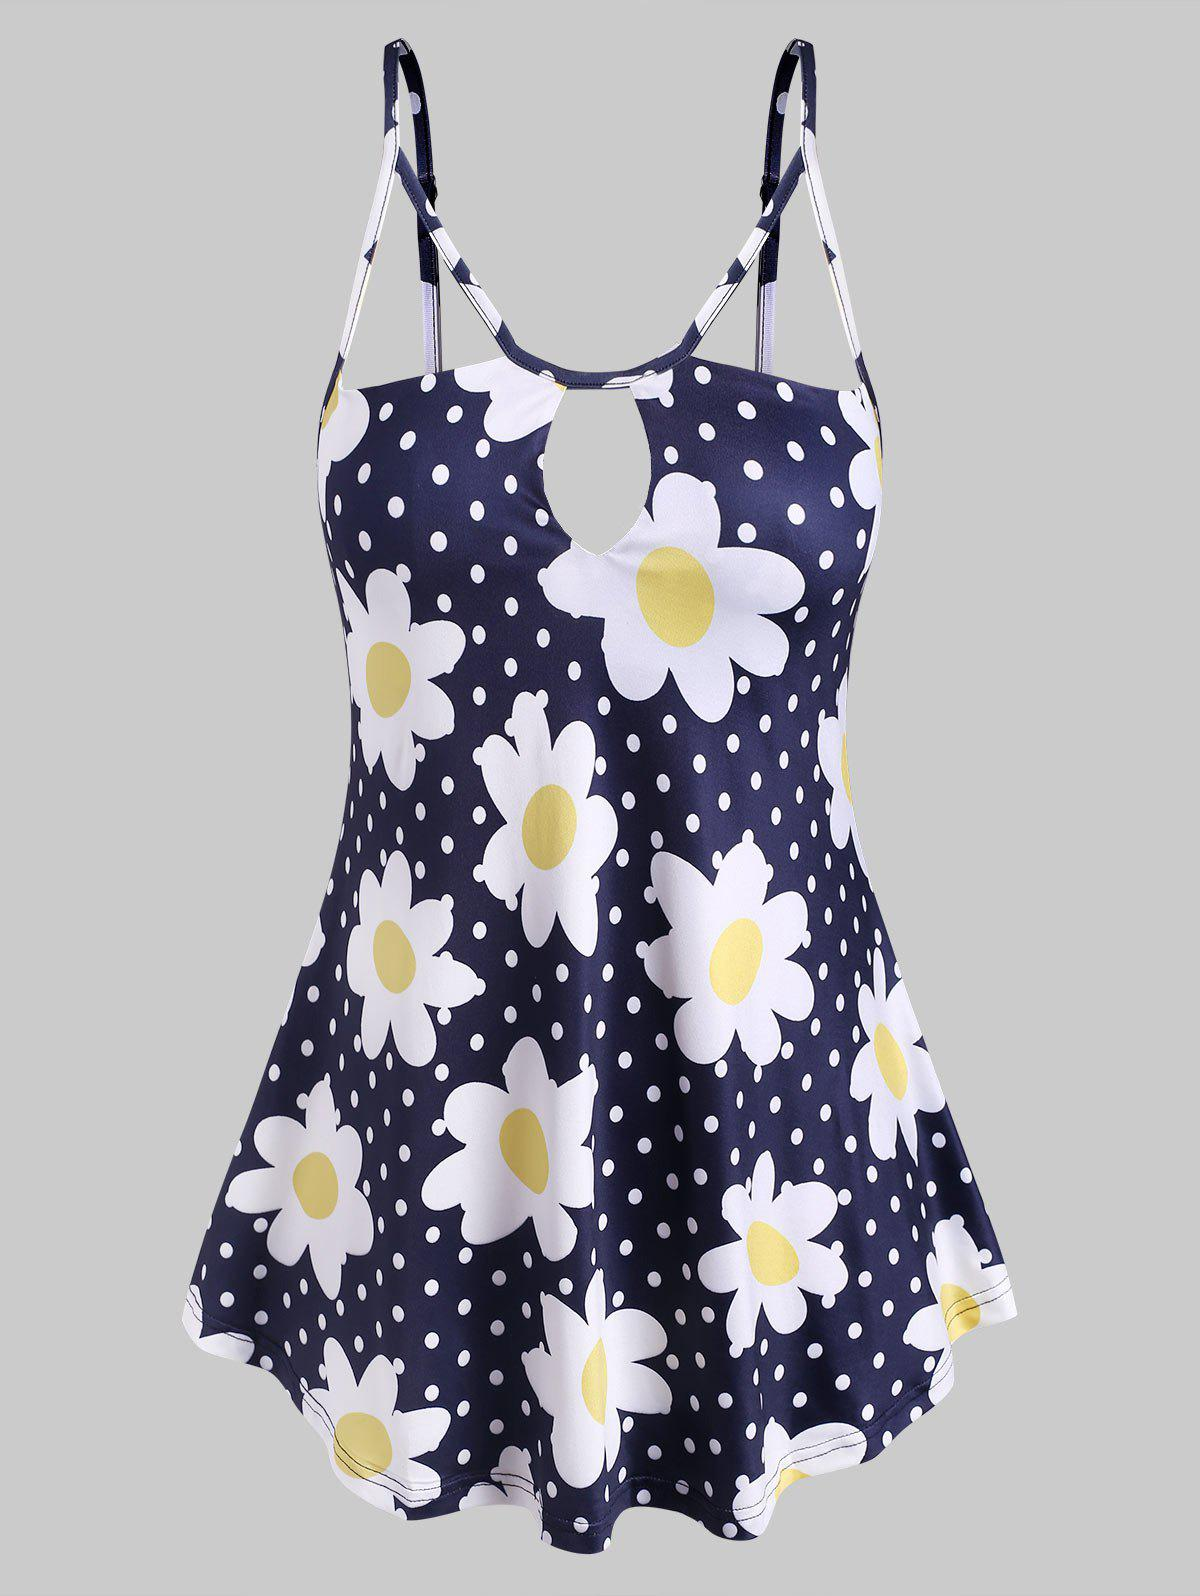 Daisy Dotted Keyhole Strappy Plus Size Cami Top - BLUE 3X